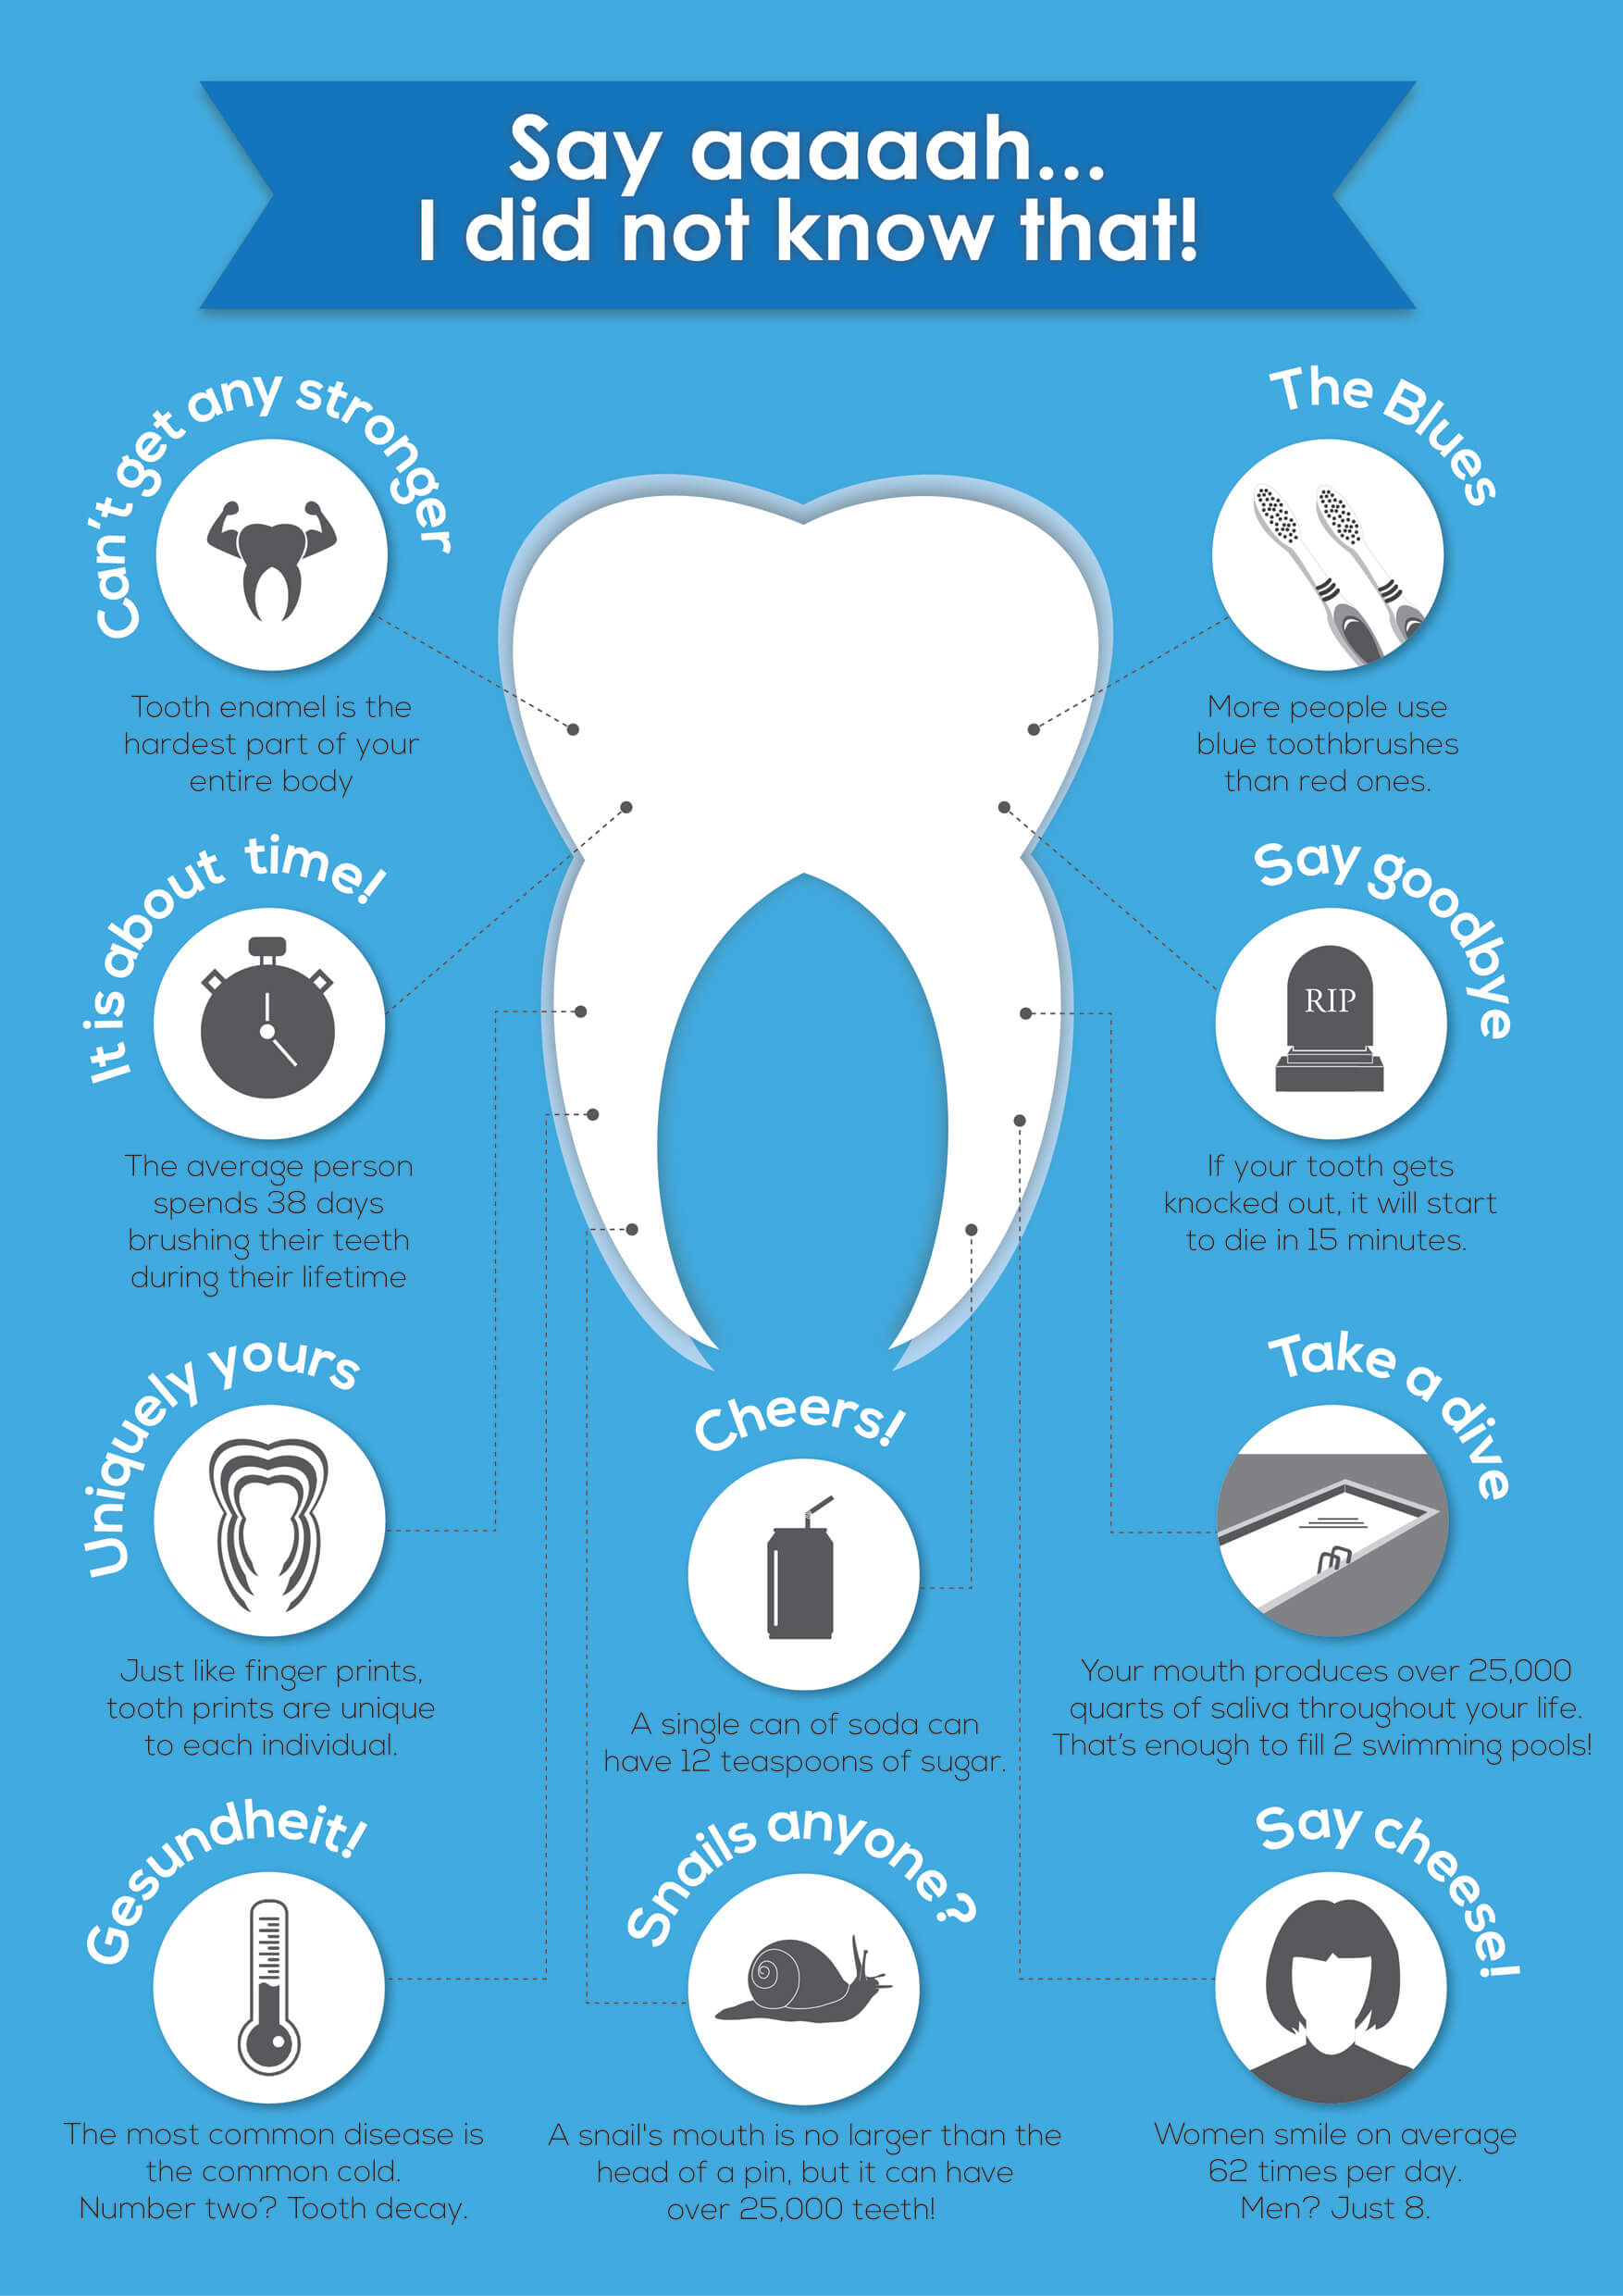 teeth-tips-infographic-plaza